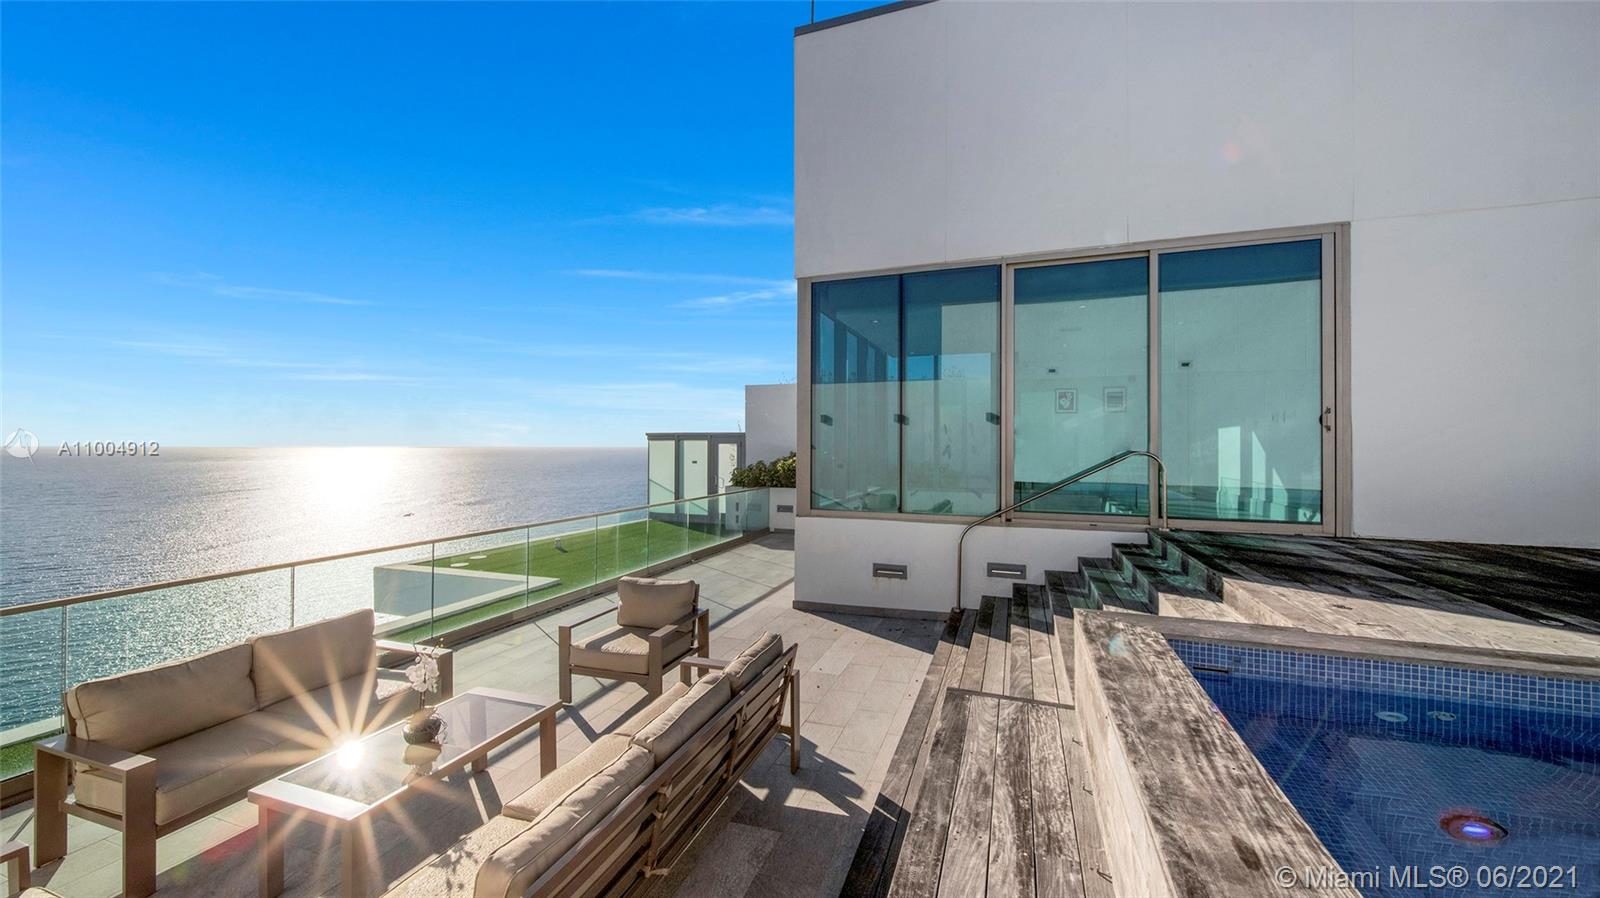 Dive into the ocean from this upper penthouse at the luxurious Oceana Bal Harbour Condo. World-class views, personal 32 ft rooftop pool, jacuzzi, and almost 6,000 sqft. This 4 BR plus media room can become your private sanctuary. The unit also features 2 master suites, 5 ½ baths, a spa-inspired master bathroom with a full-size sauna, two oversized showers, a stone bathtub, and two enclosed toilet rooms. The upper level includes a summer kitchen and outside lounge areas with direct Ocean, Bay, and City views. The main level features marble floors, 11 ft-high ceilings, and high-impact sliding doors that allow access to the XL balcony overlooking the ocean from every room. Oceana features 5-star amenities including a world-class spa, Olympic-style lap pool, two tennis courts, and more.